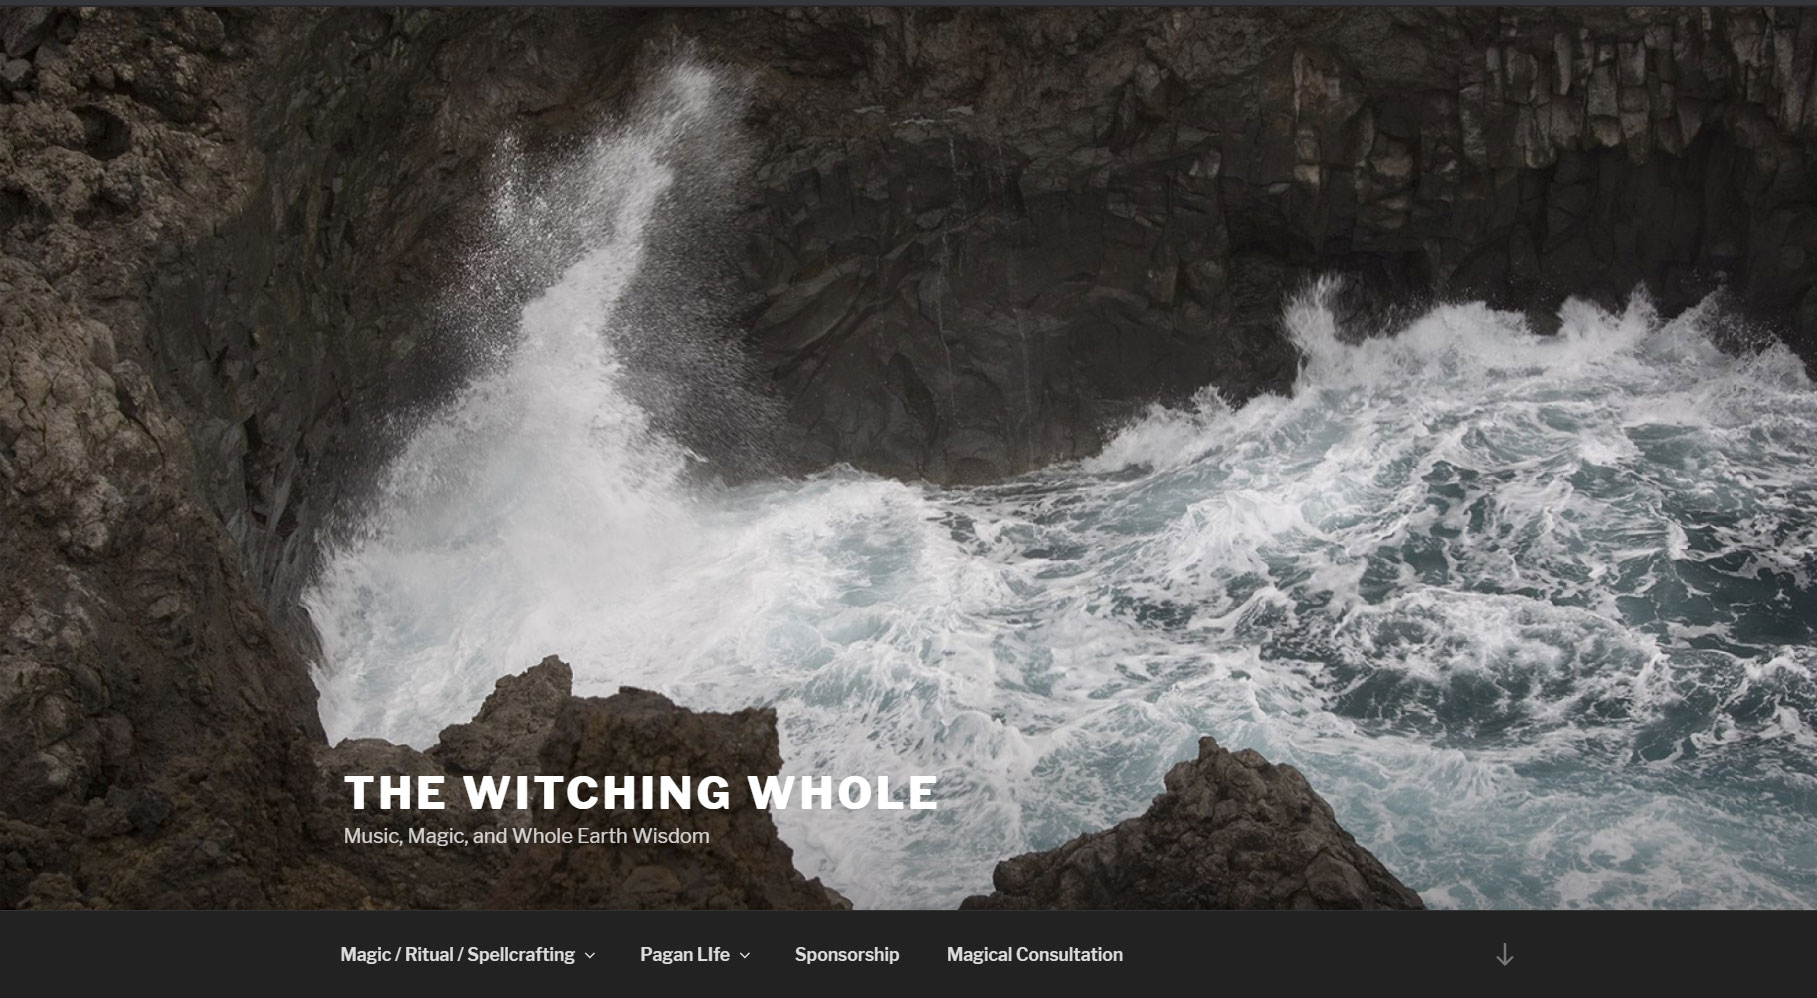 Witching Whole Website Home Page